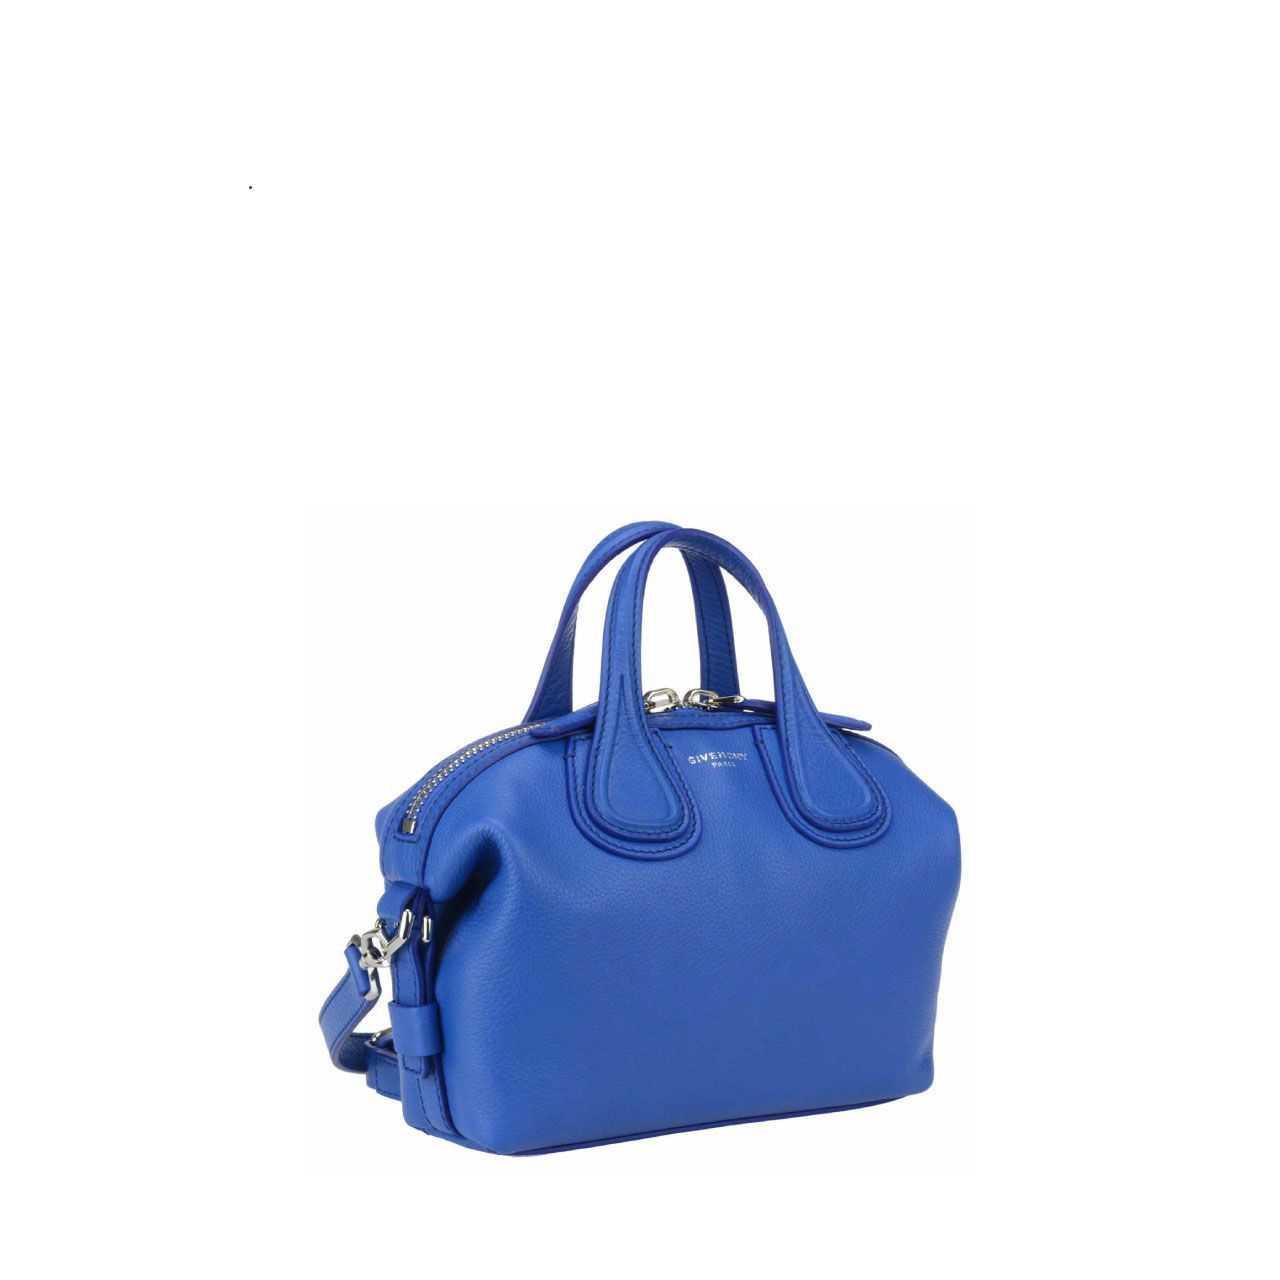 6f4436229672 GIVENCHY GIVENCHY NIGHTINGALE MICRO BAG.  givenchy  bags  leather ...